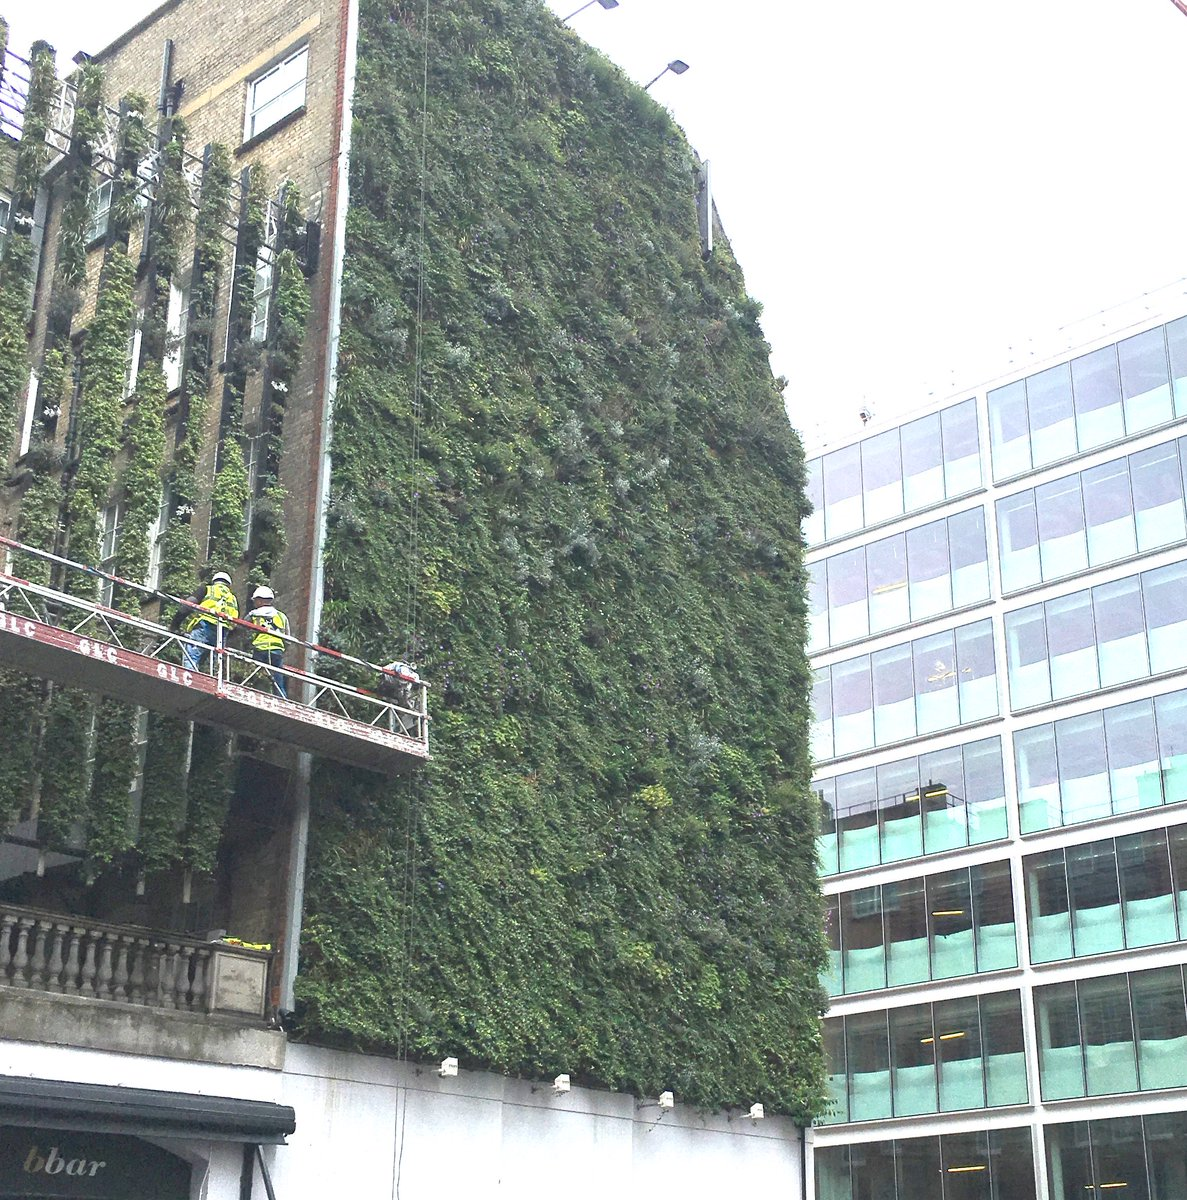 Vegetated versus glass facades. Maintenance by @seagramking of Rubens at the Palace Hotel https://t.co/3kAHdLw04X